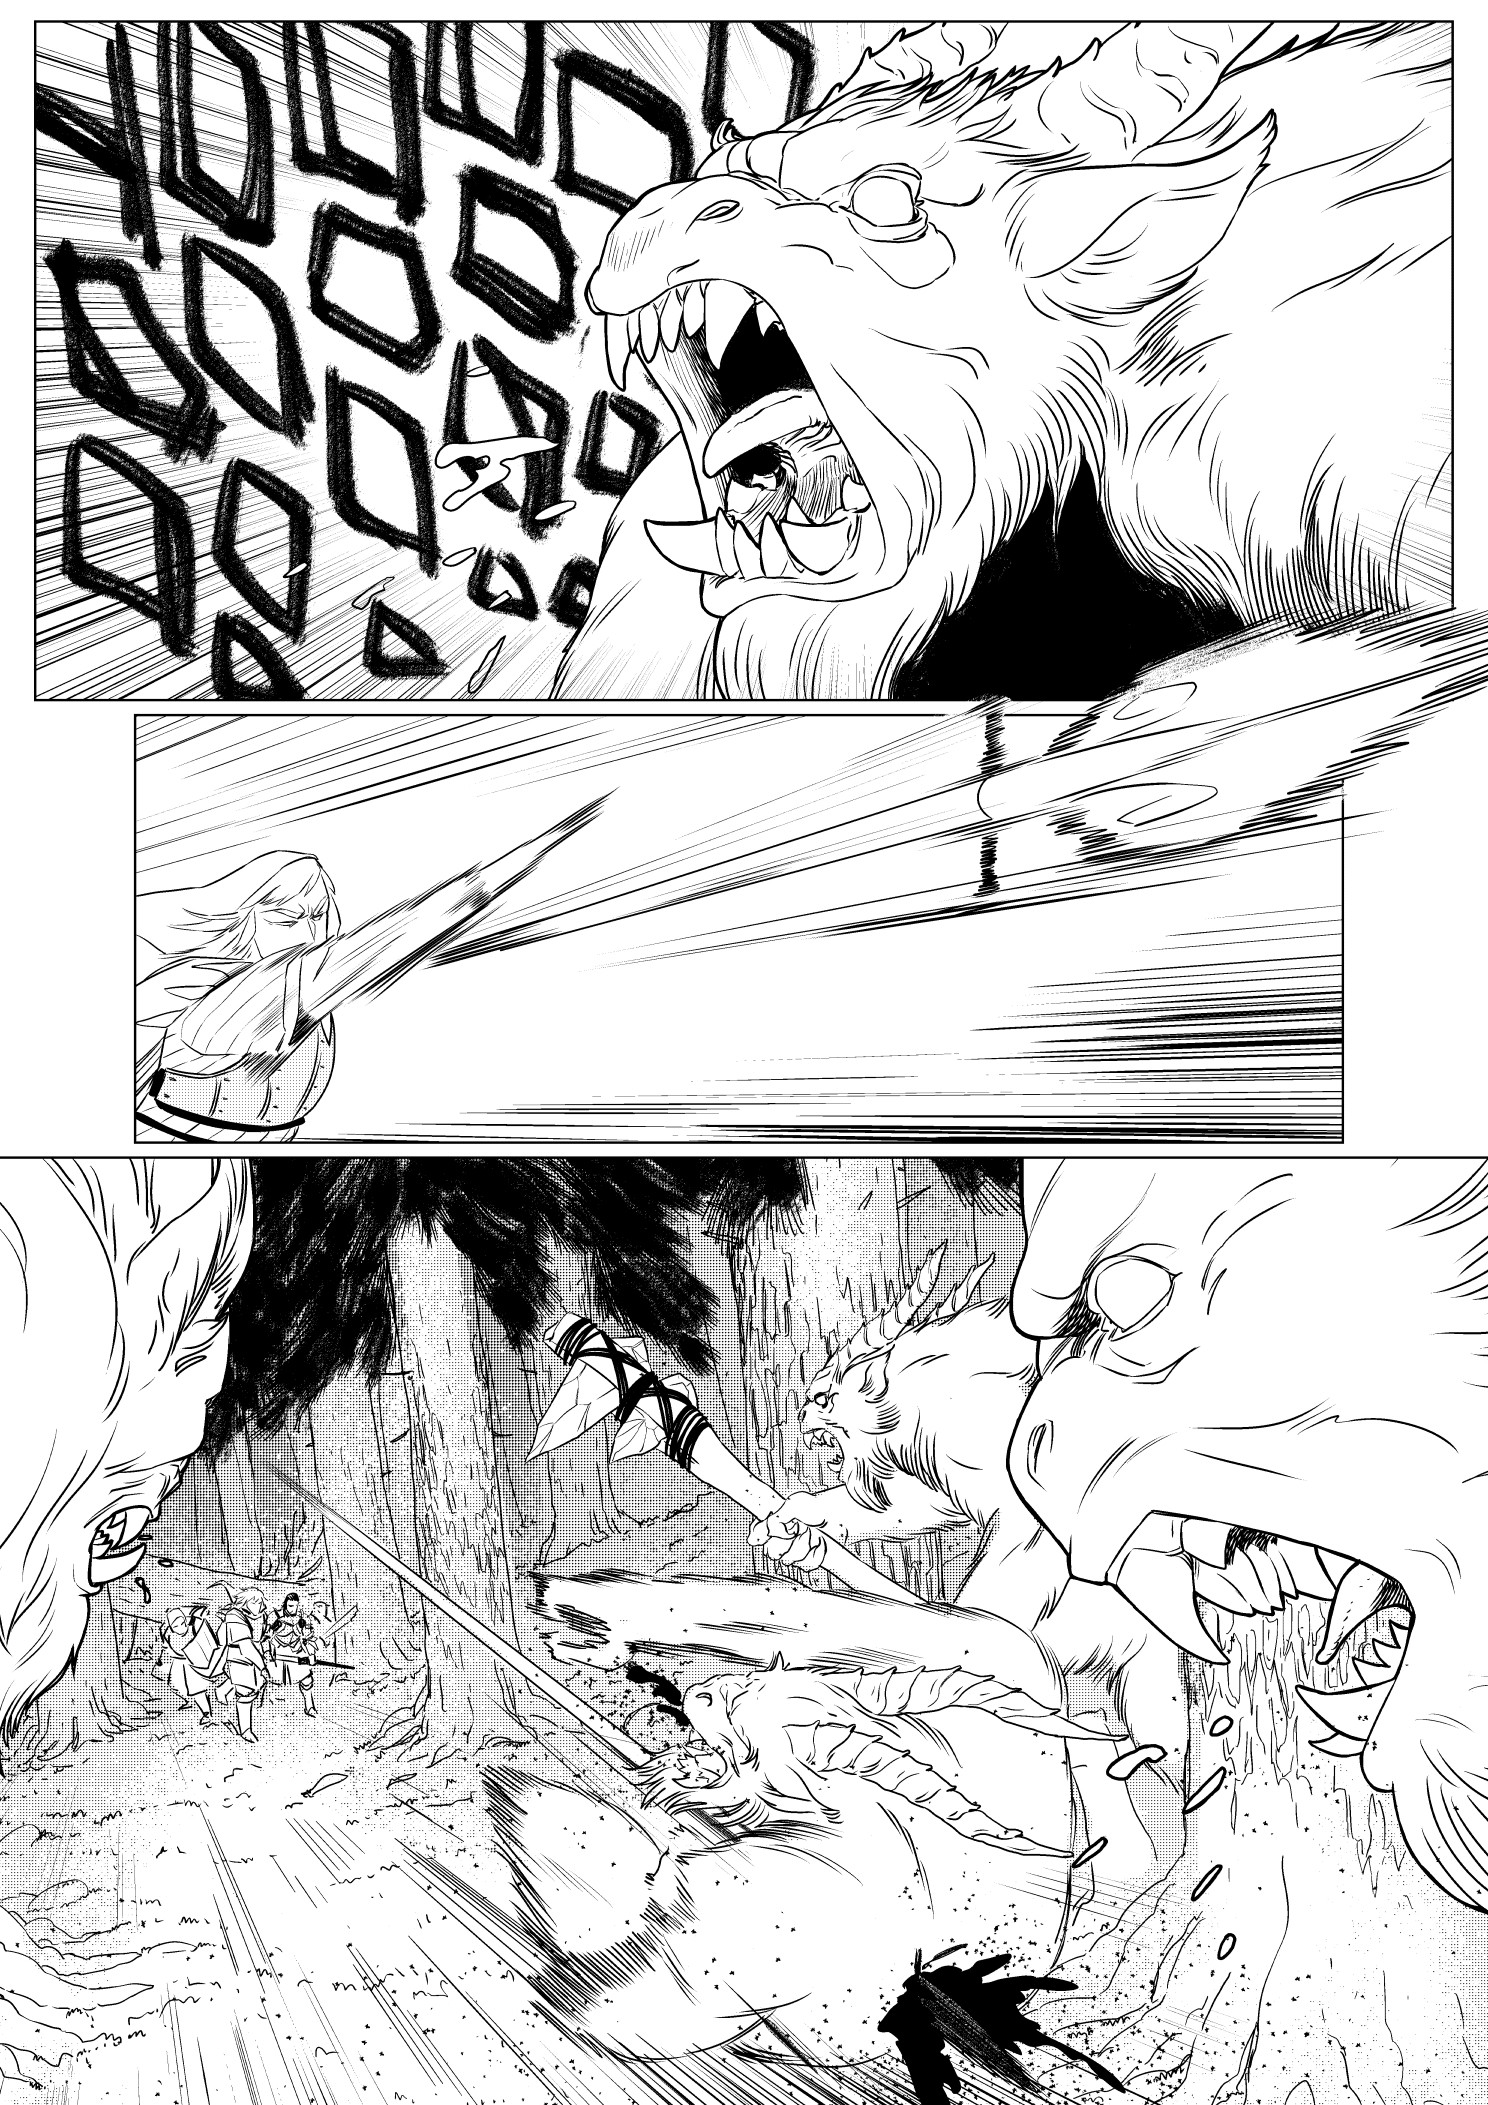 Greeme doe 03 pg 012